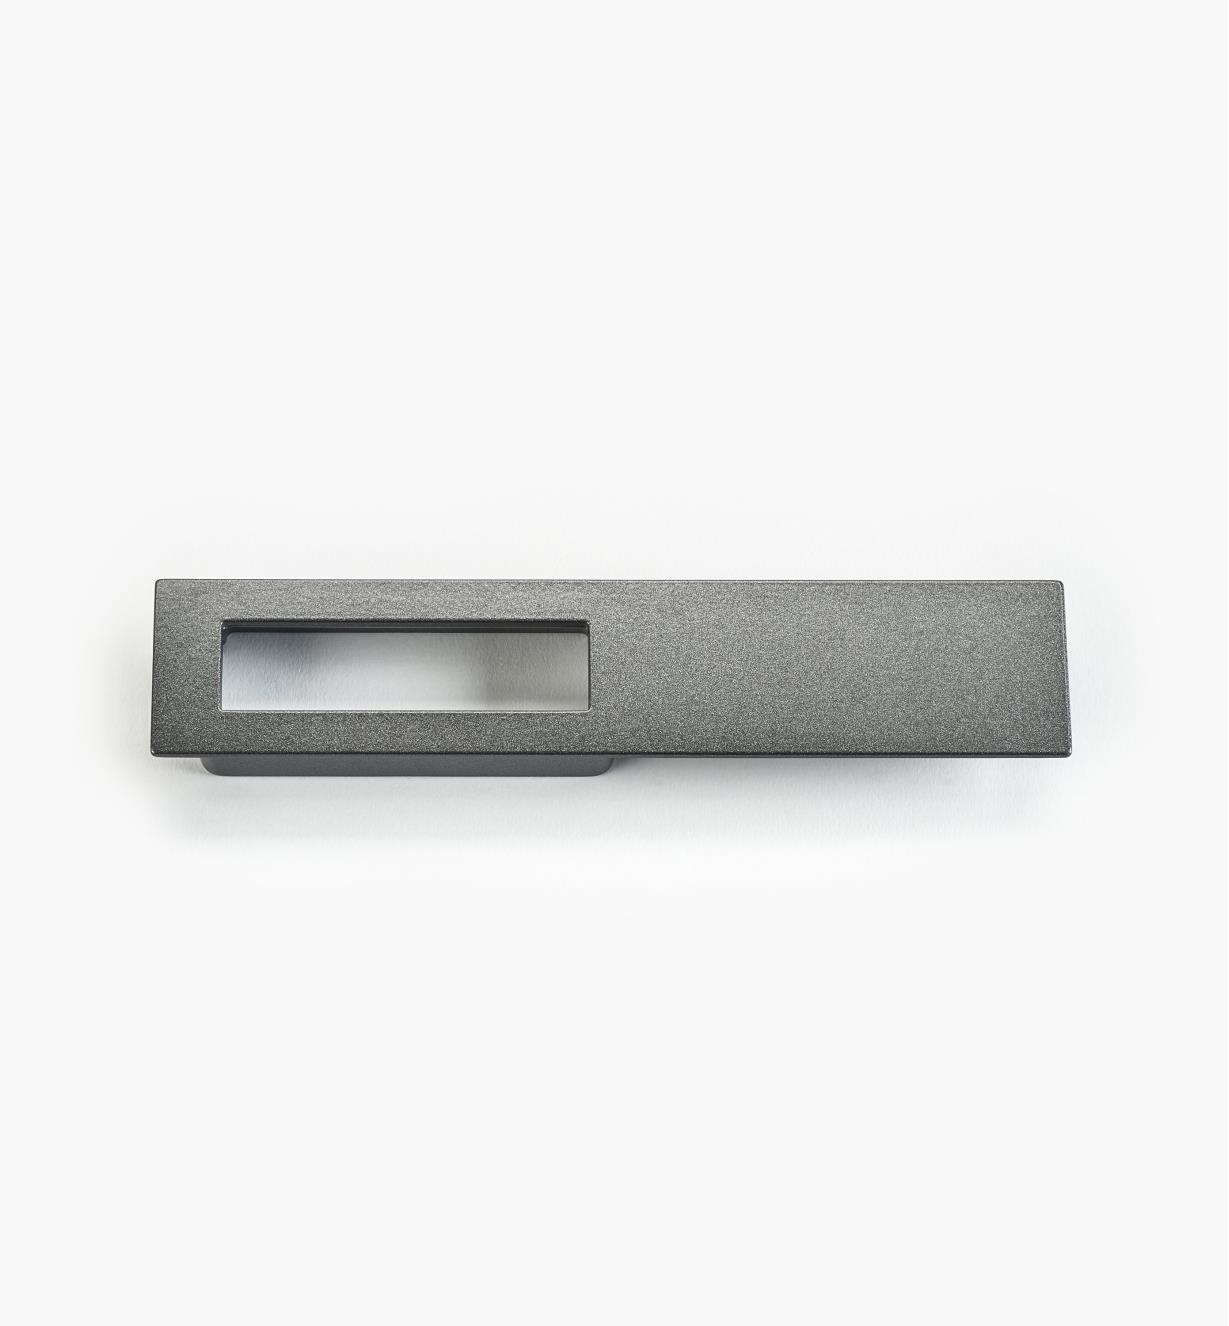 02W1677 - Graphite Mortise Pull